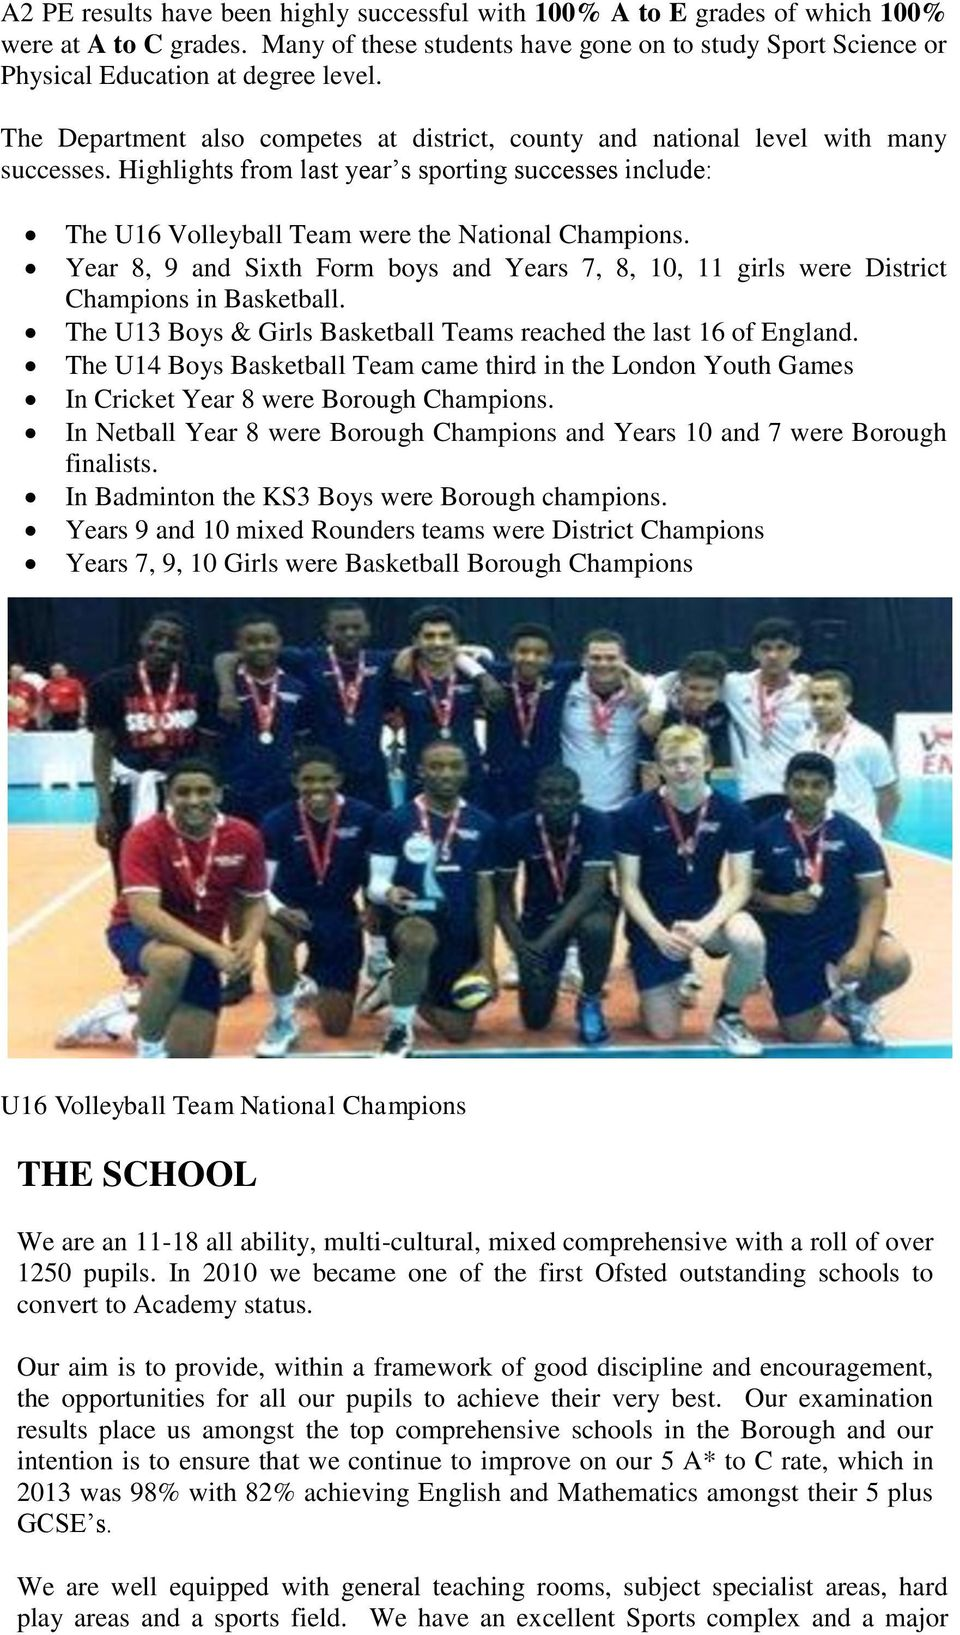 Year 8, 9 and Sixth Form boys and Years 7, 8, 10, 11 girls were District Champions in Basketball. The U13 Boys & Girls Basketball Teams reached the last 16 of England.